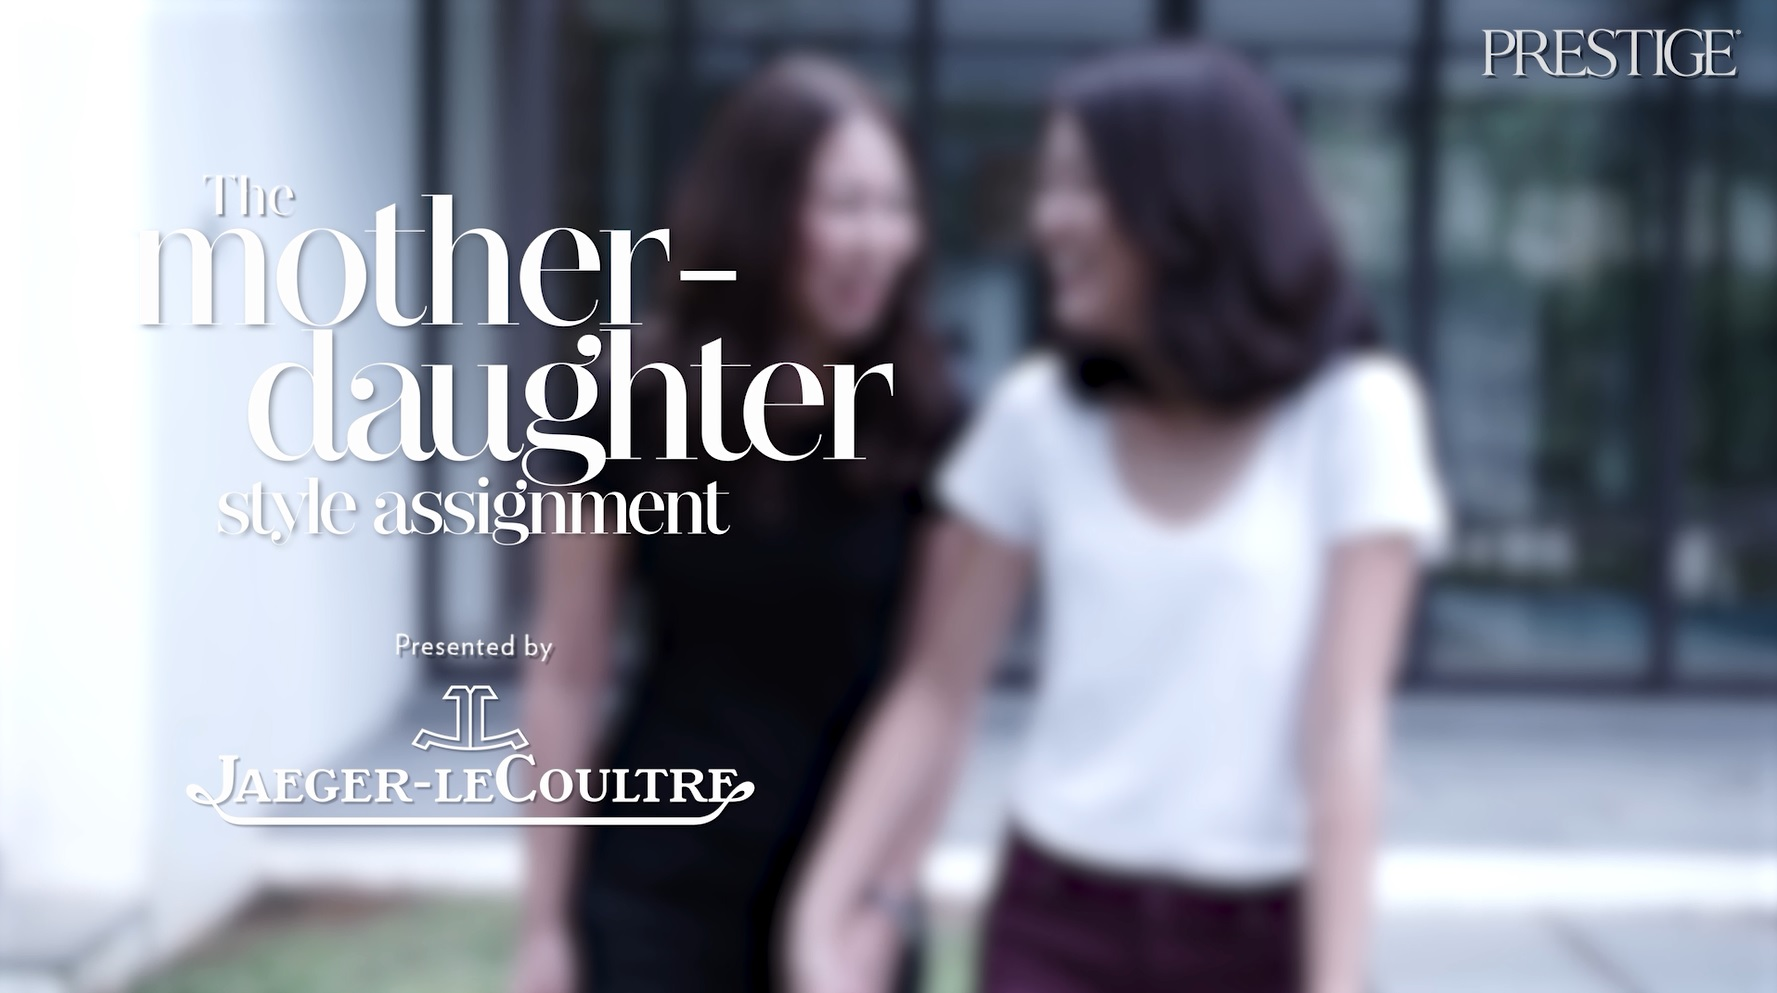 The Jaeger-LeCoultre Mother-Daughter Style Assignment — June & Samantha Rin